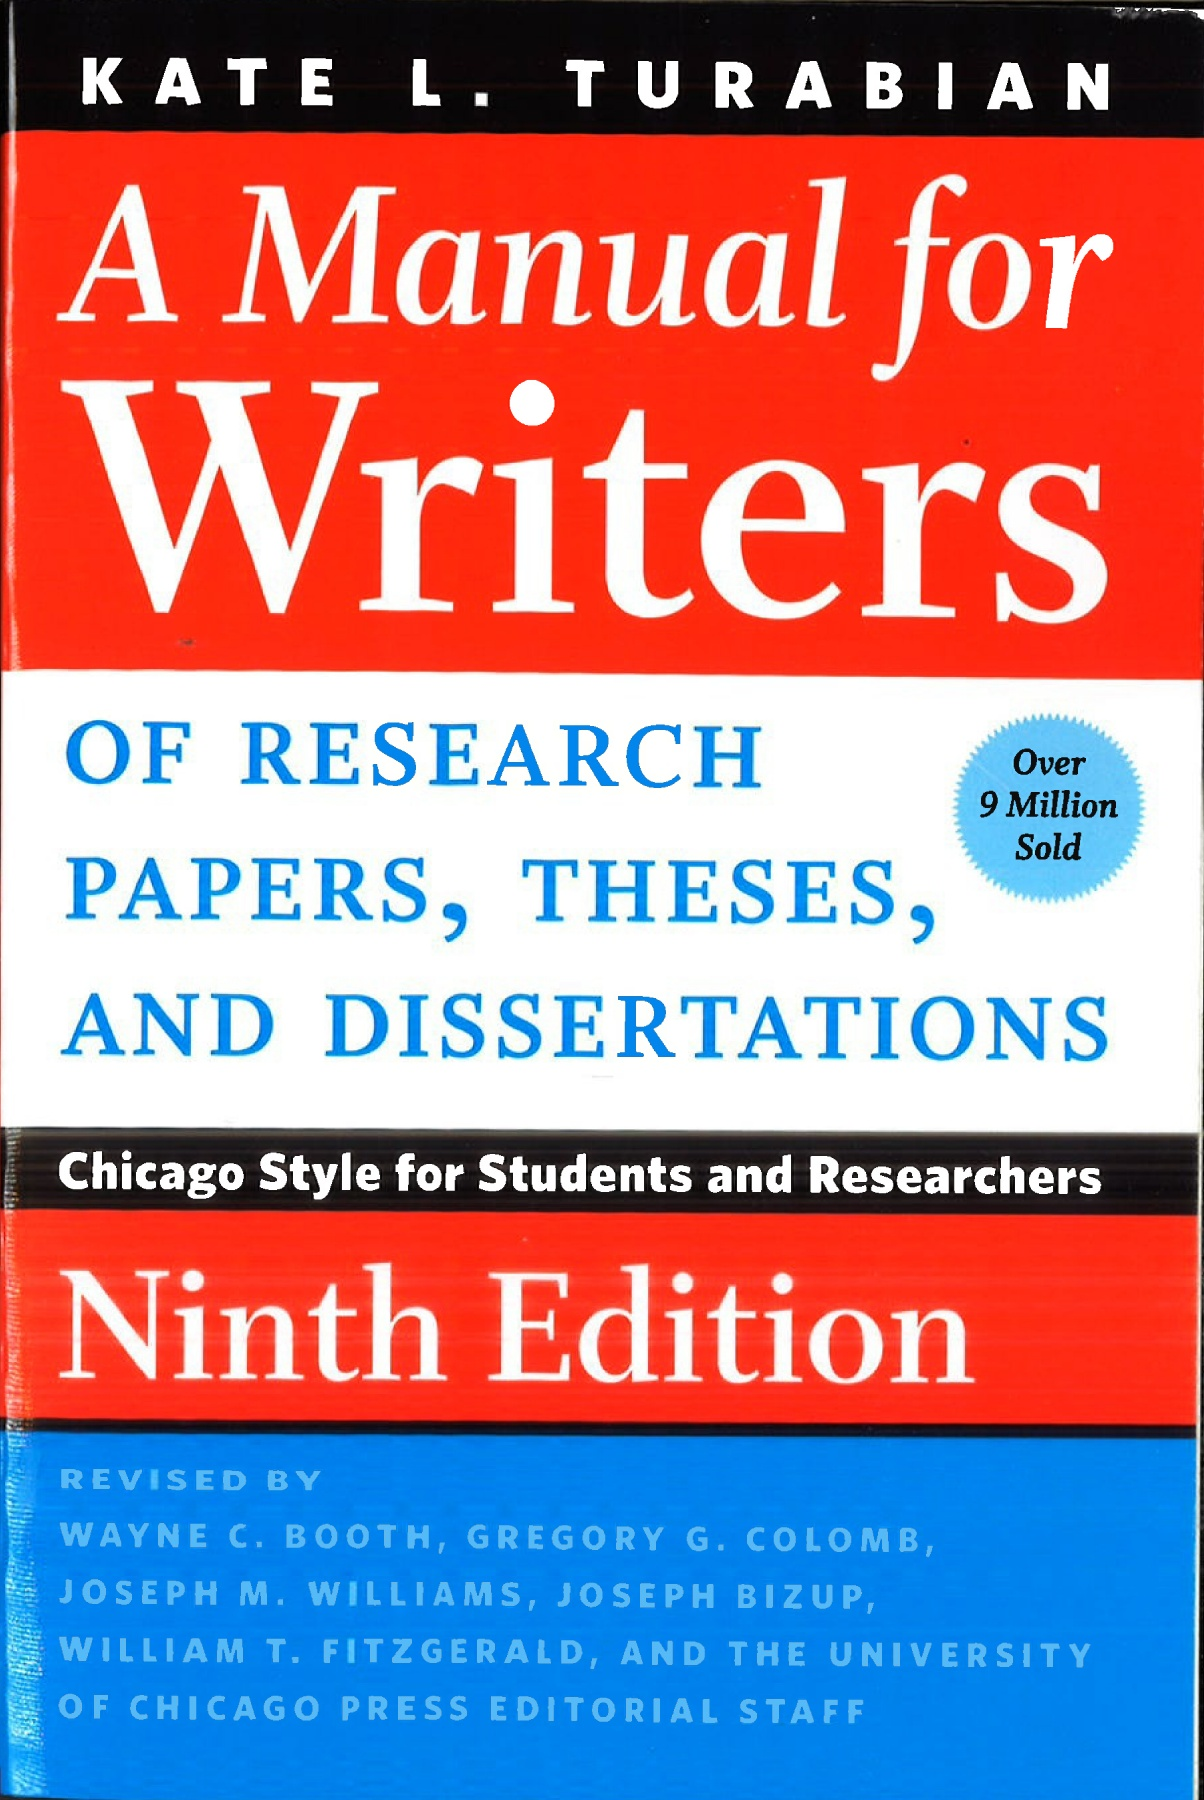 007 Research Paper Manual For Writers Of Papers Theses And Dissertations Amazing A Turabian Pdf Full